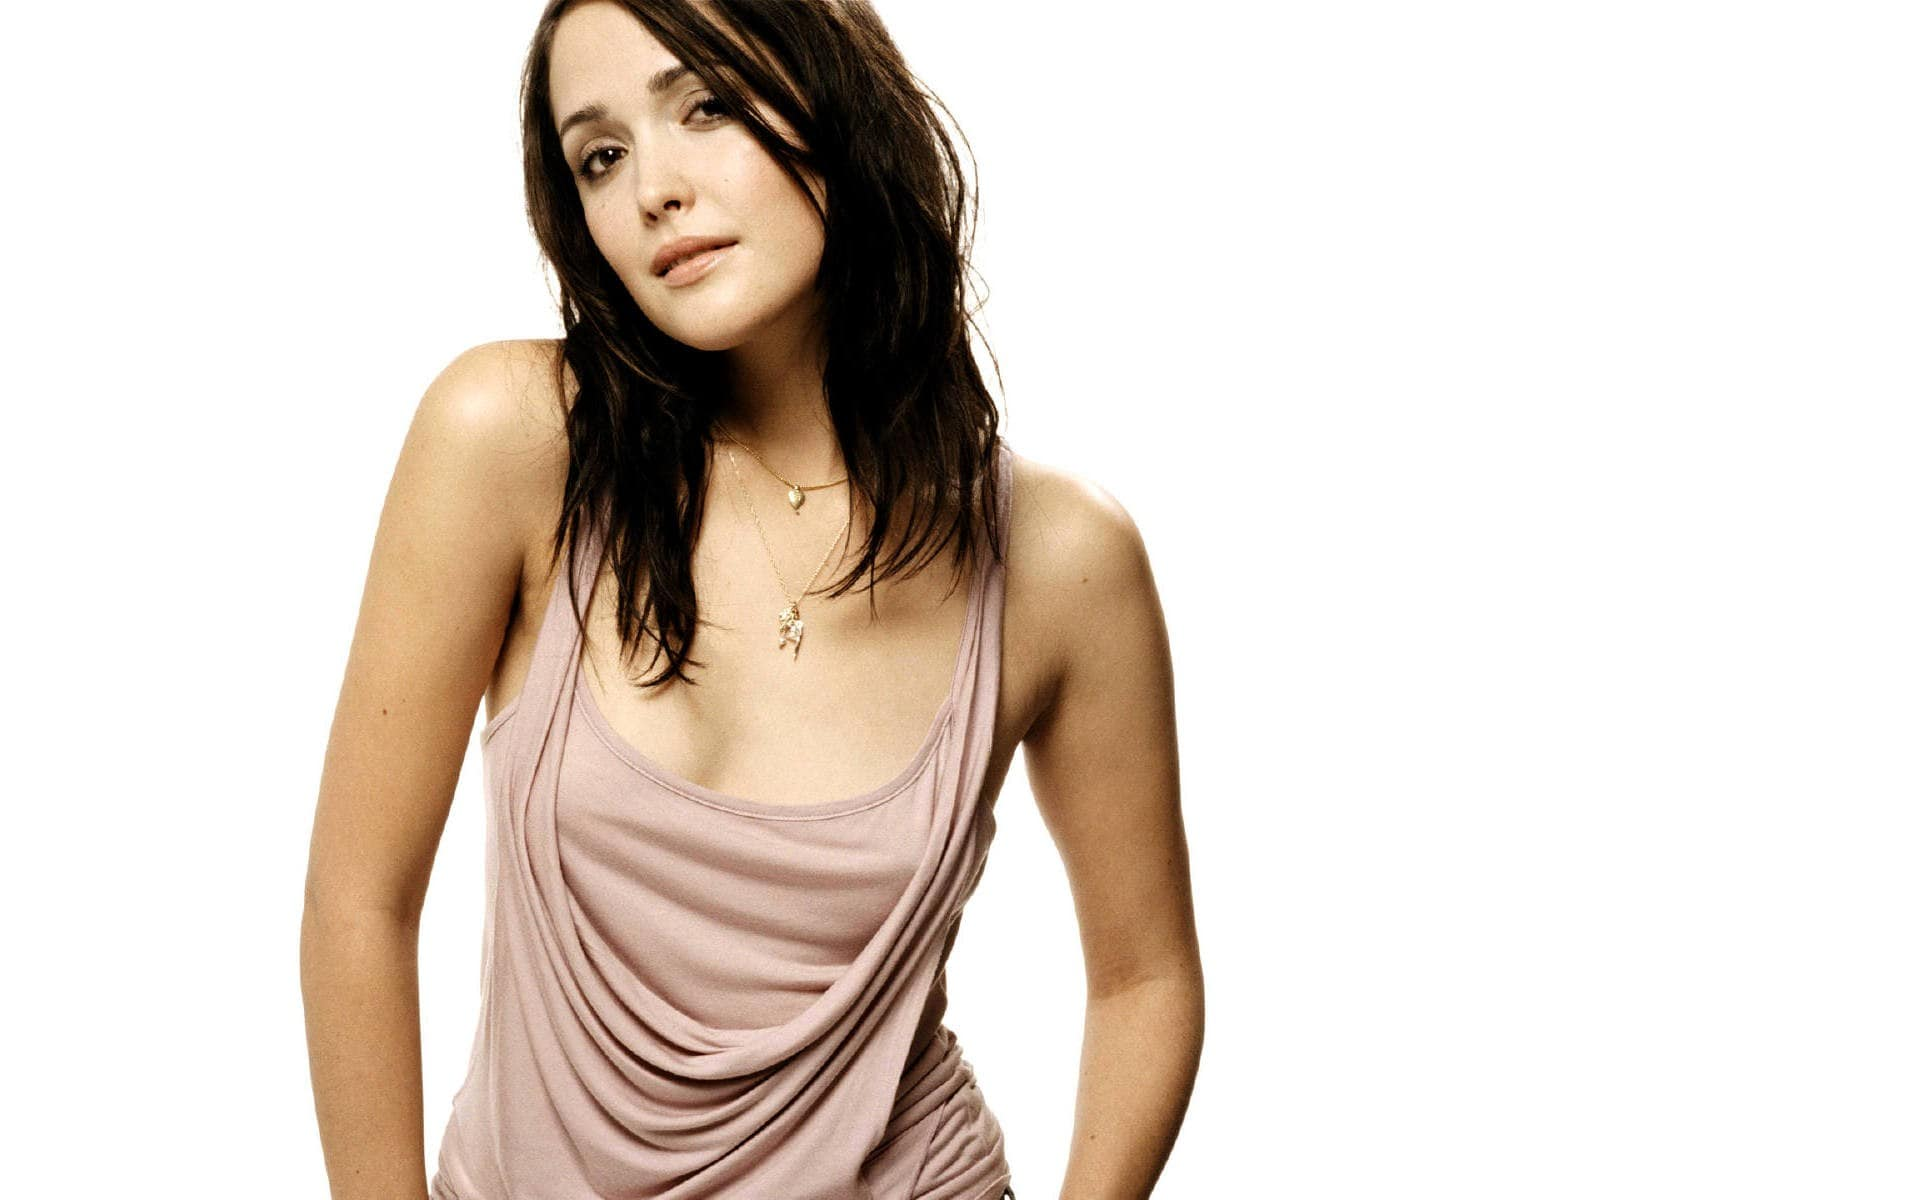 1920x1200 - Rose Byrne Wallpapers 22